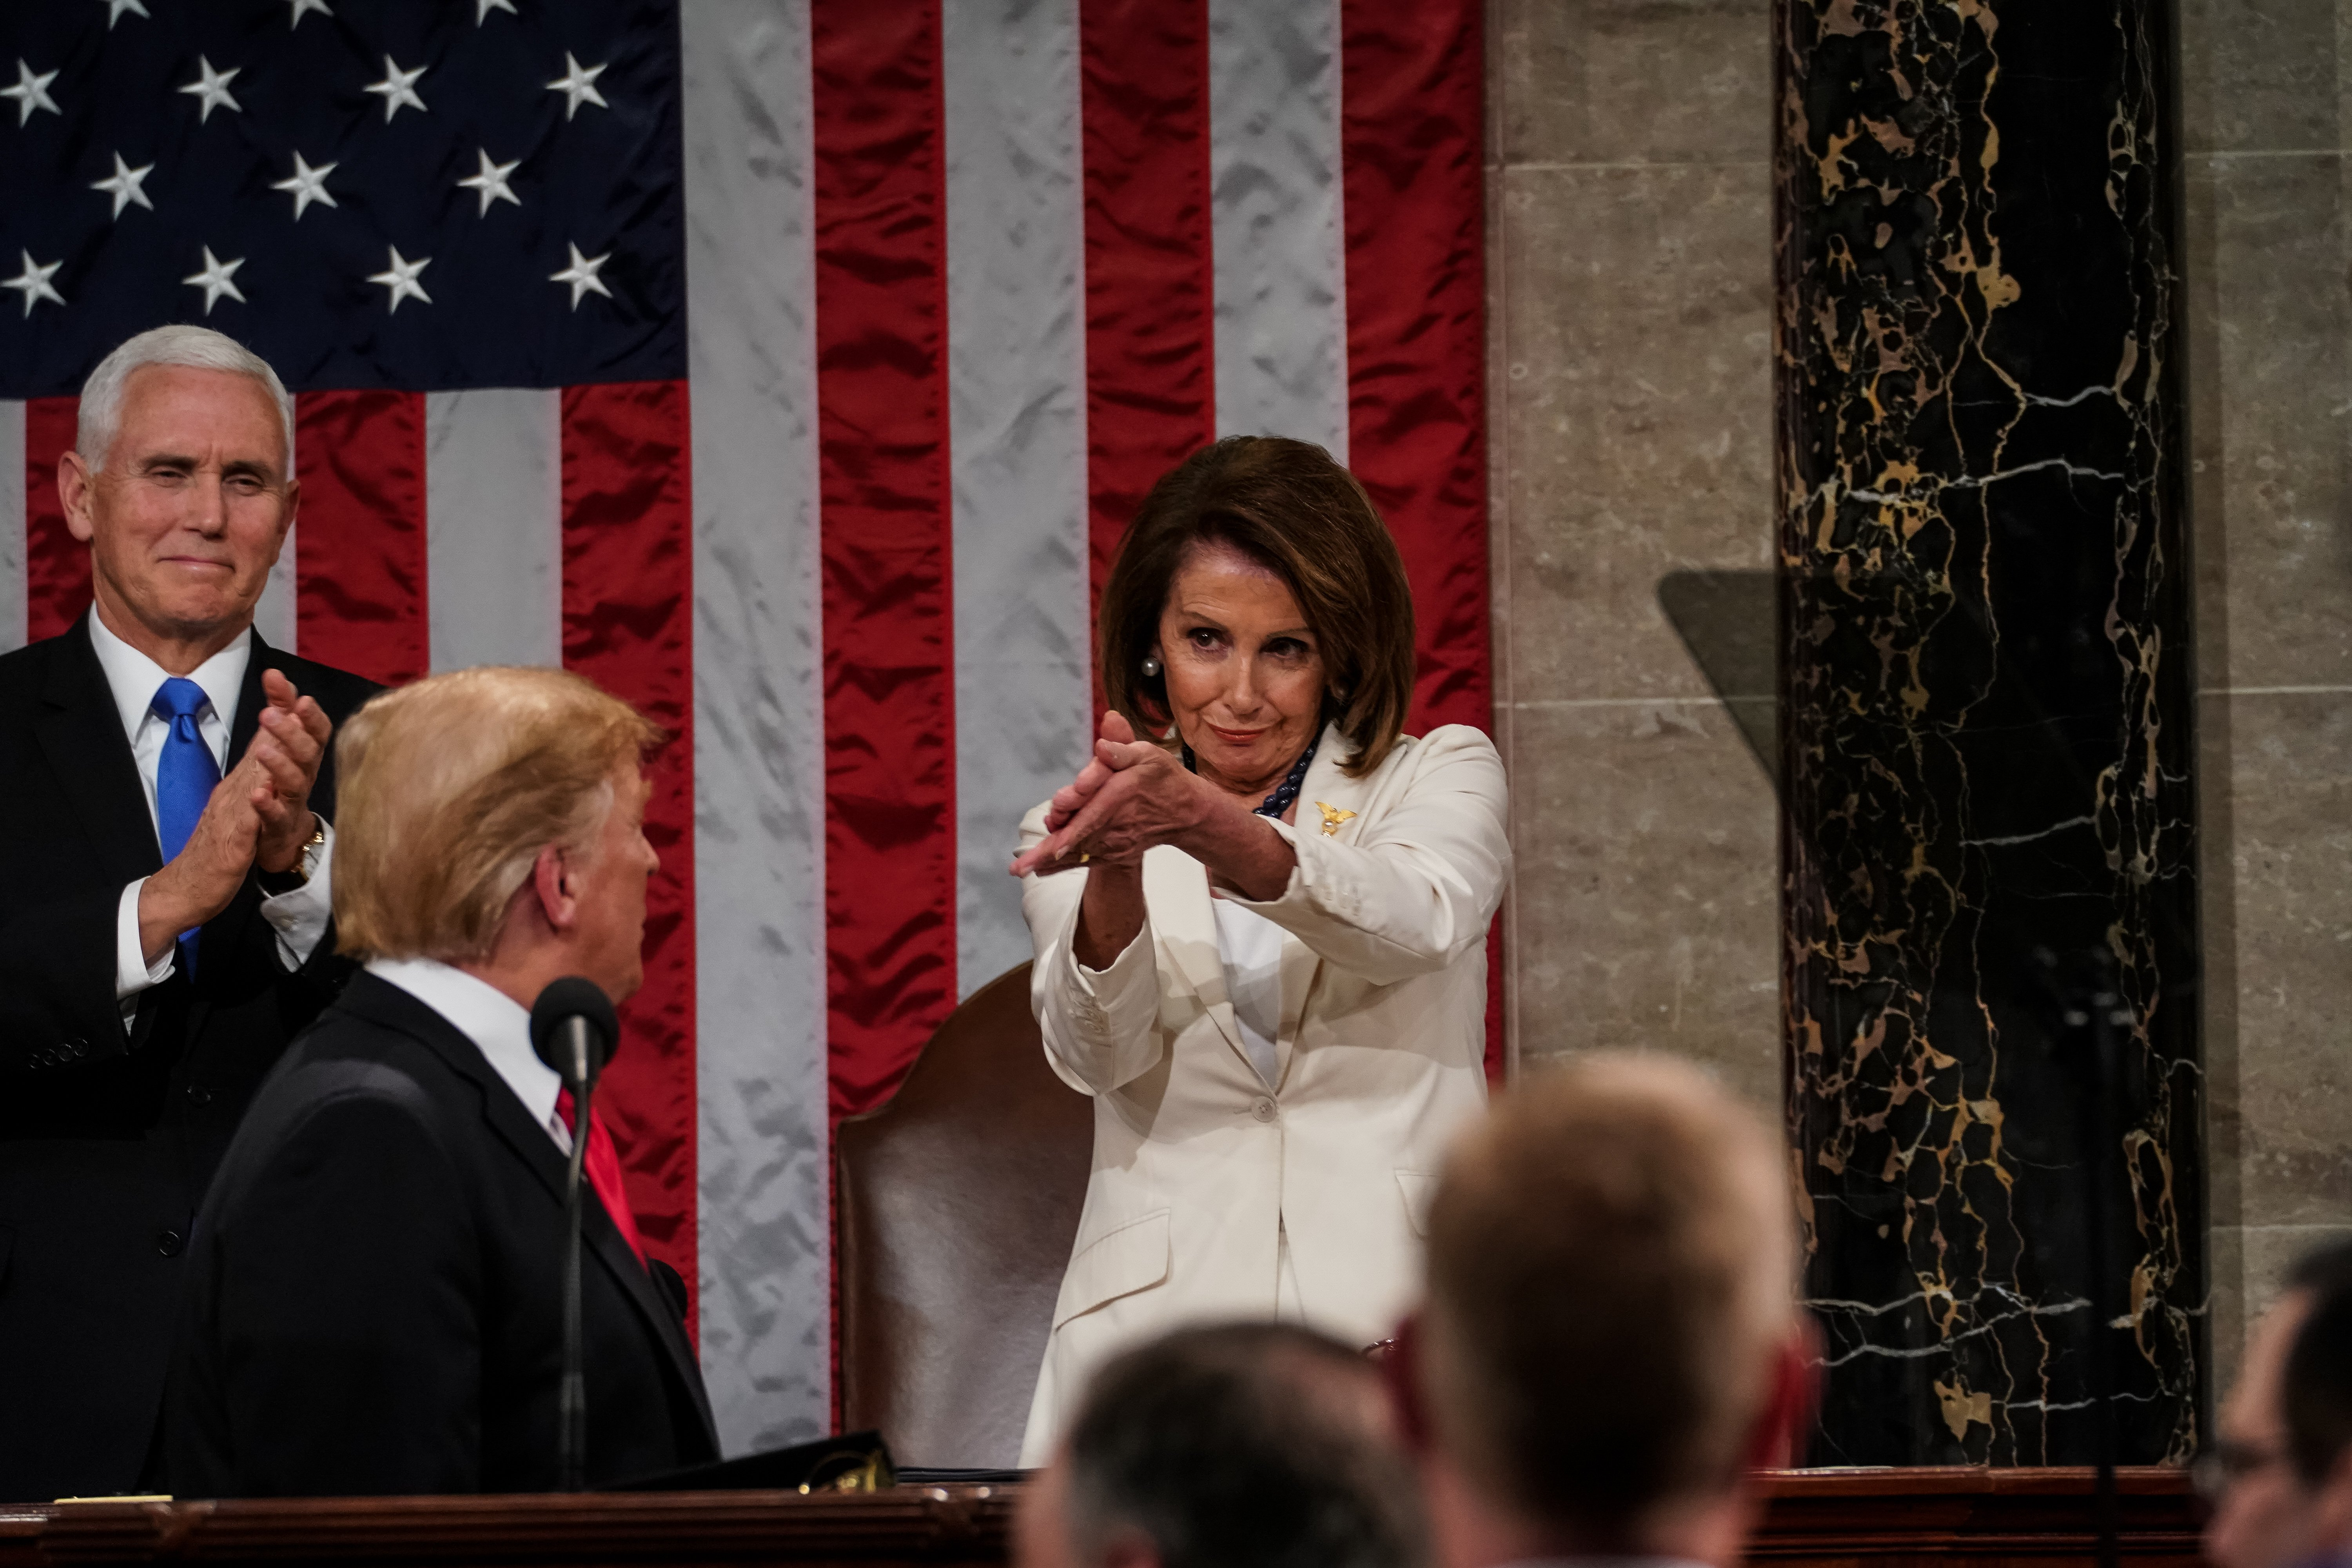 President Donald Trump giving his State of the Union Speech with Nancy Pelosi applauding him in February 2019 | Photo: Getty Images